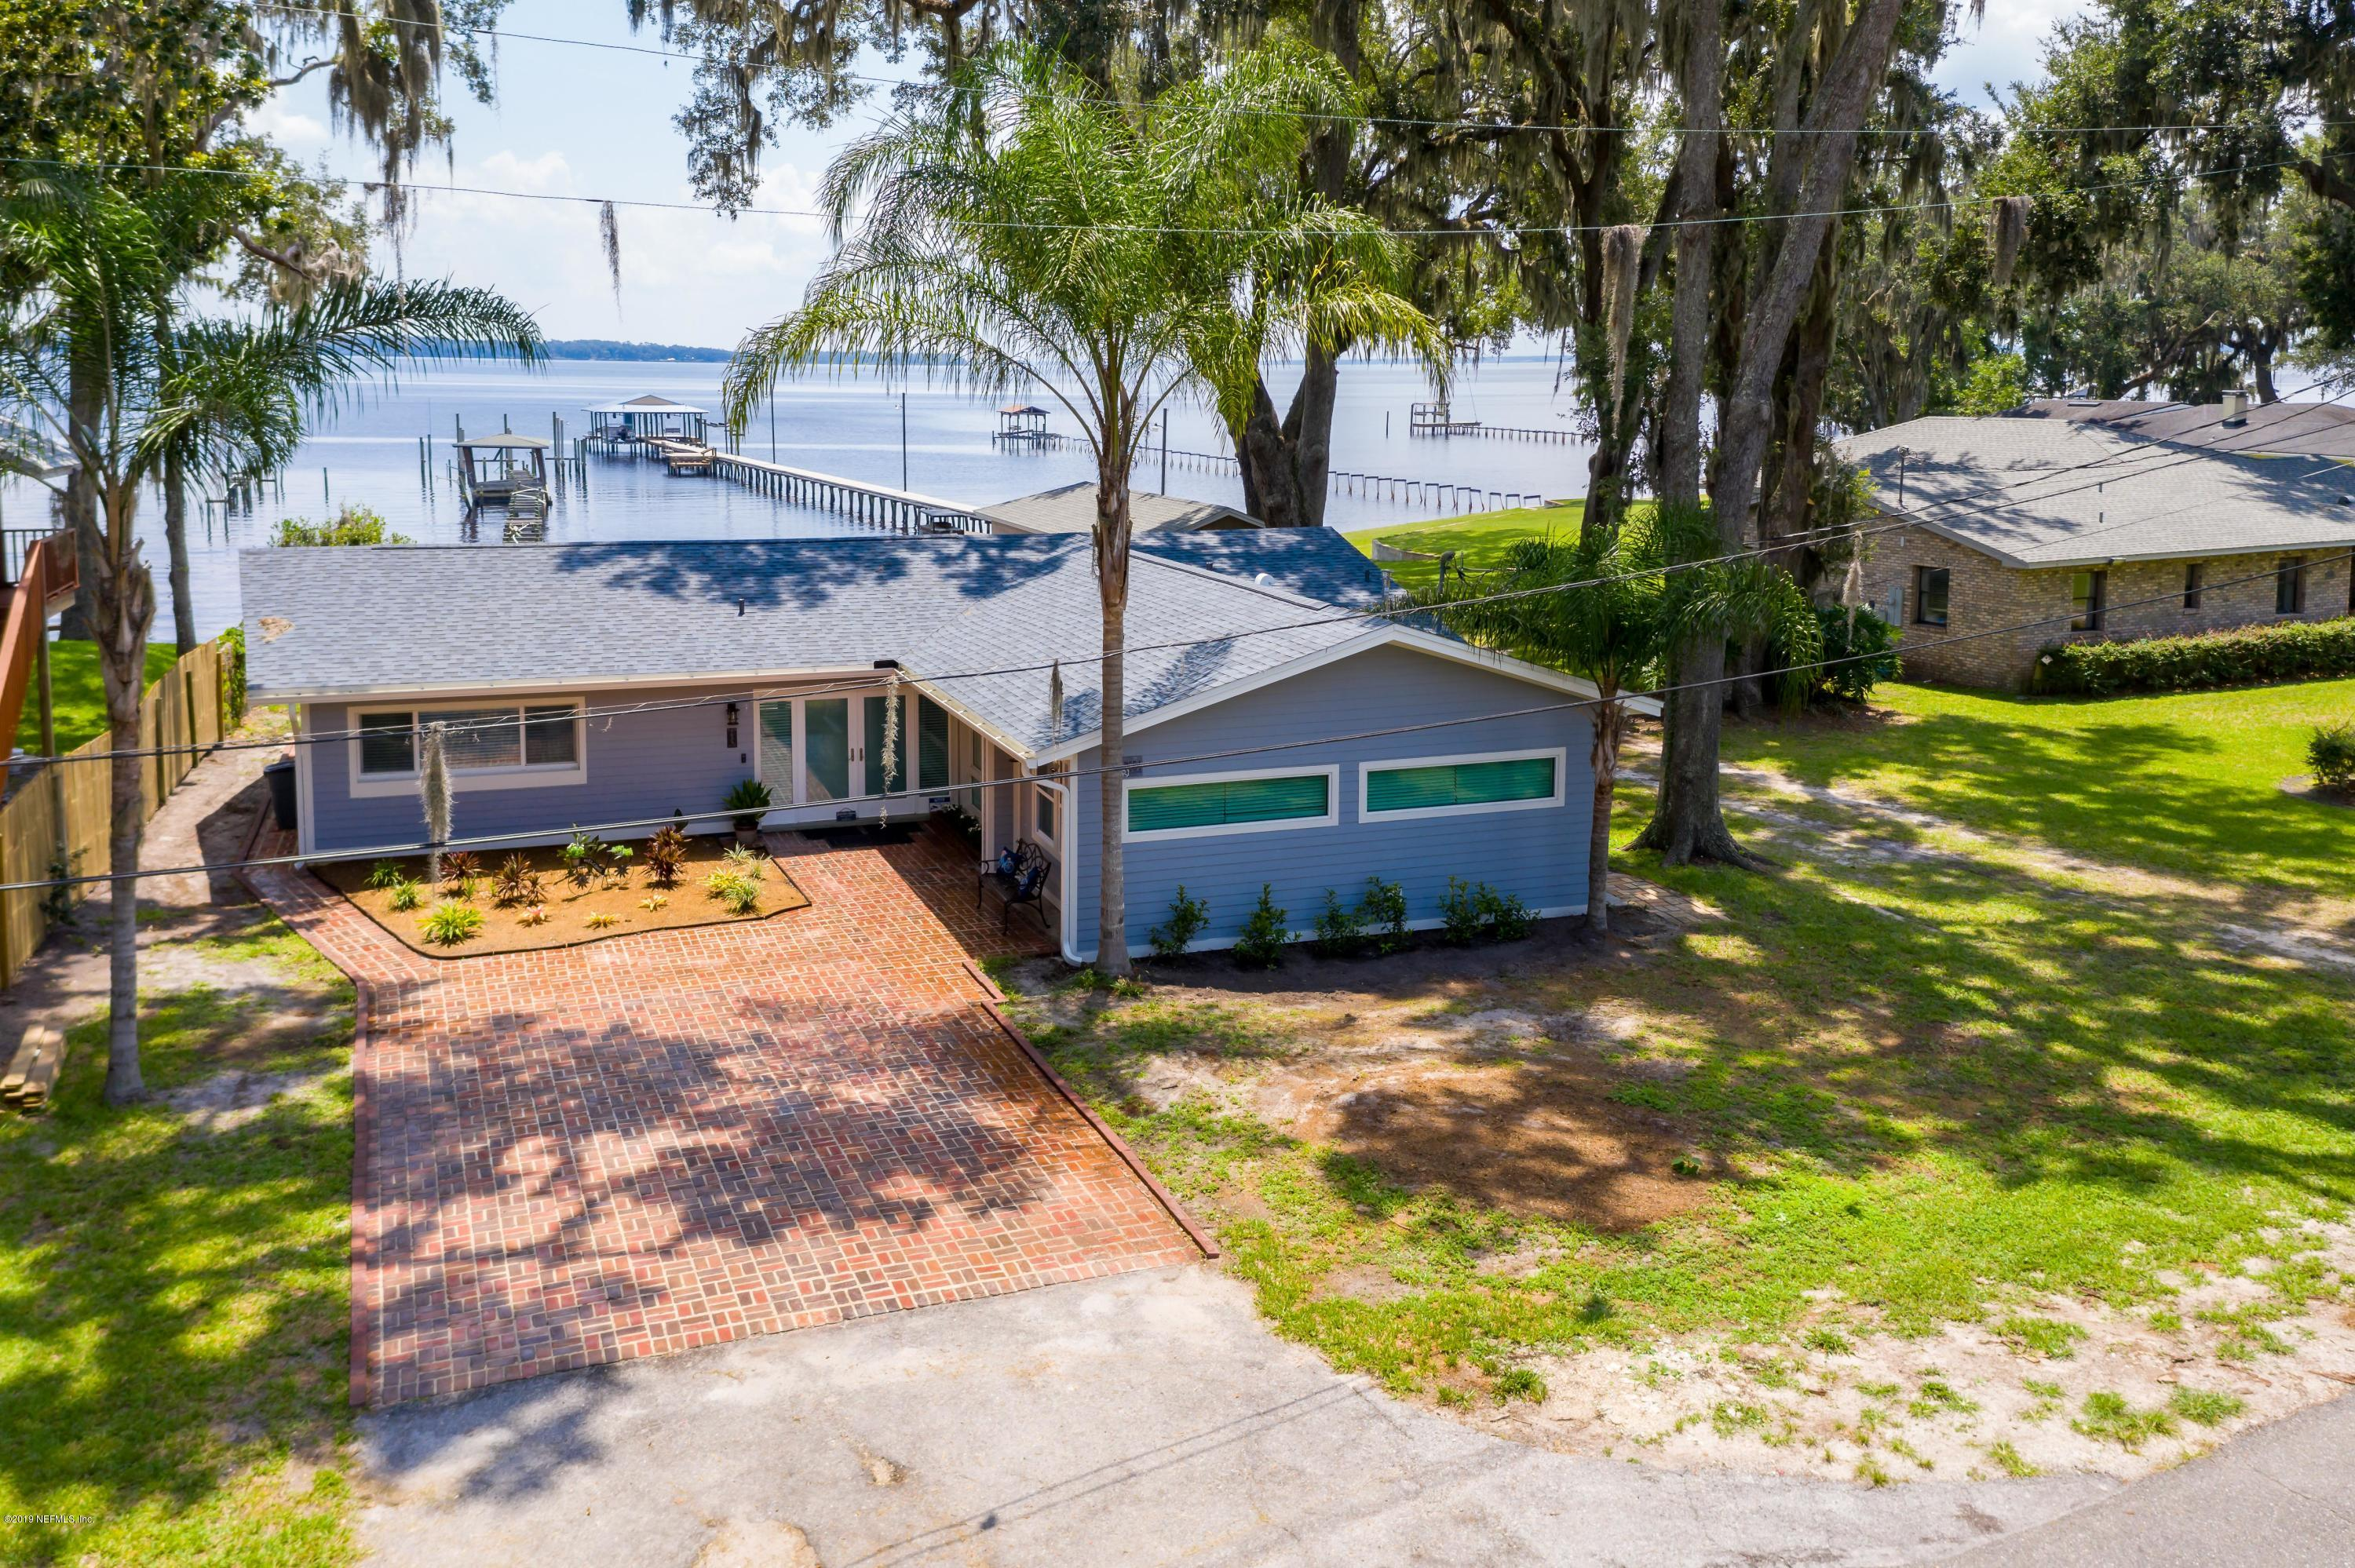 7654 RIVER, FLEMING ISLAND, FLORIDA 32003, 3 Bedrooms Bedrooms, ,2 BathroomsBathrooms,Residential - single family,For sale,RIVER,1010433